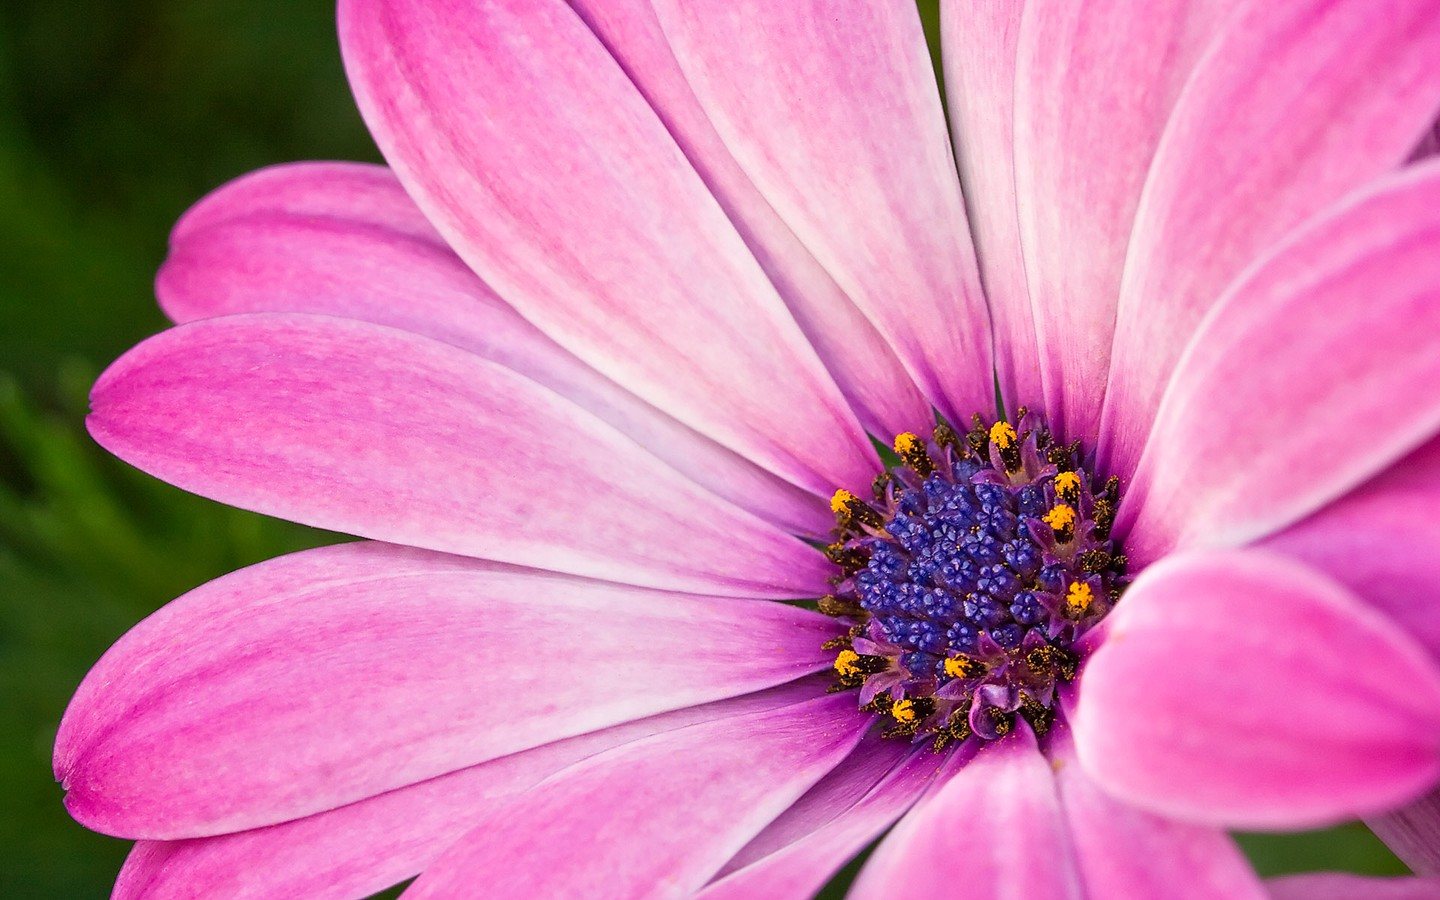 Purple daisies 31720 flower wallpapers flowers purple daisies 31720 izmirmasajfo